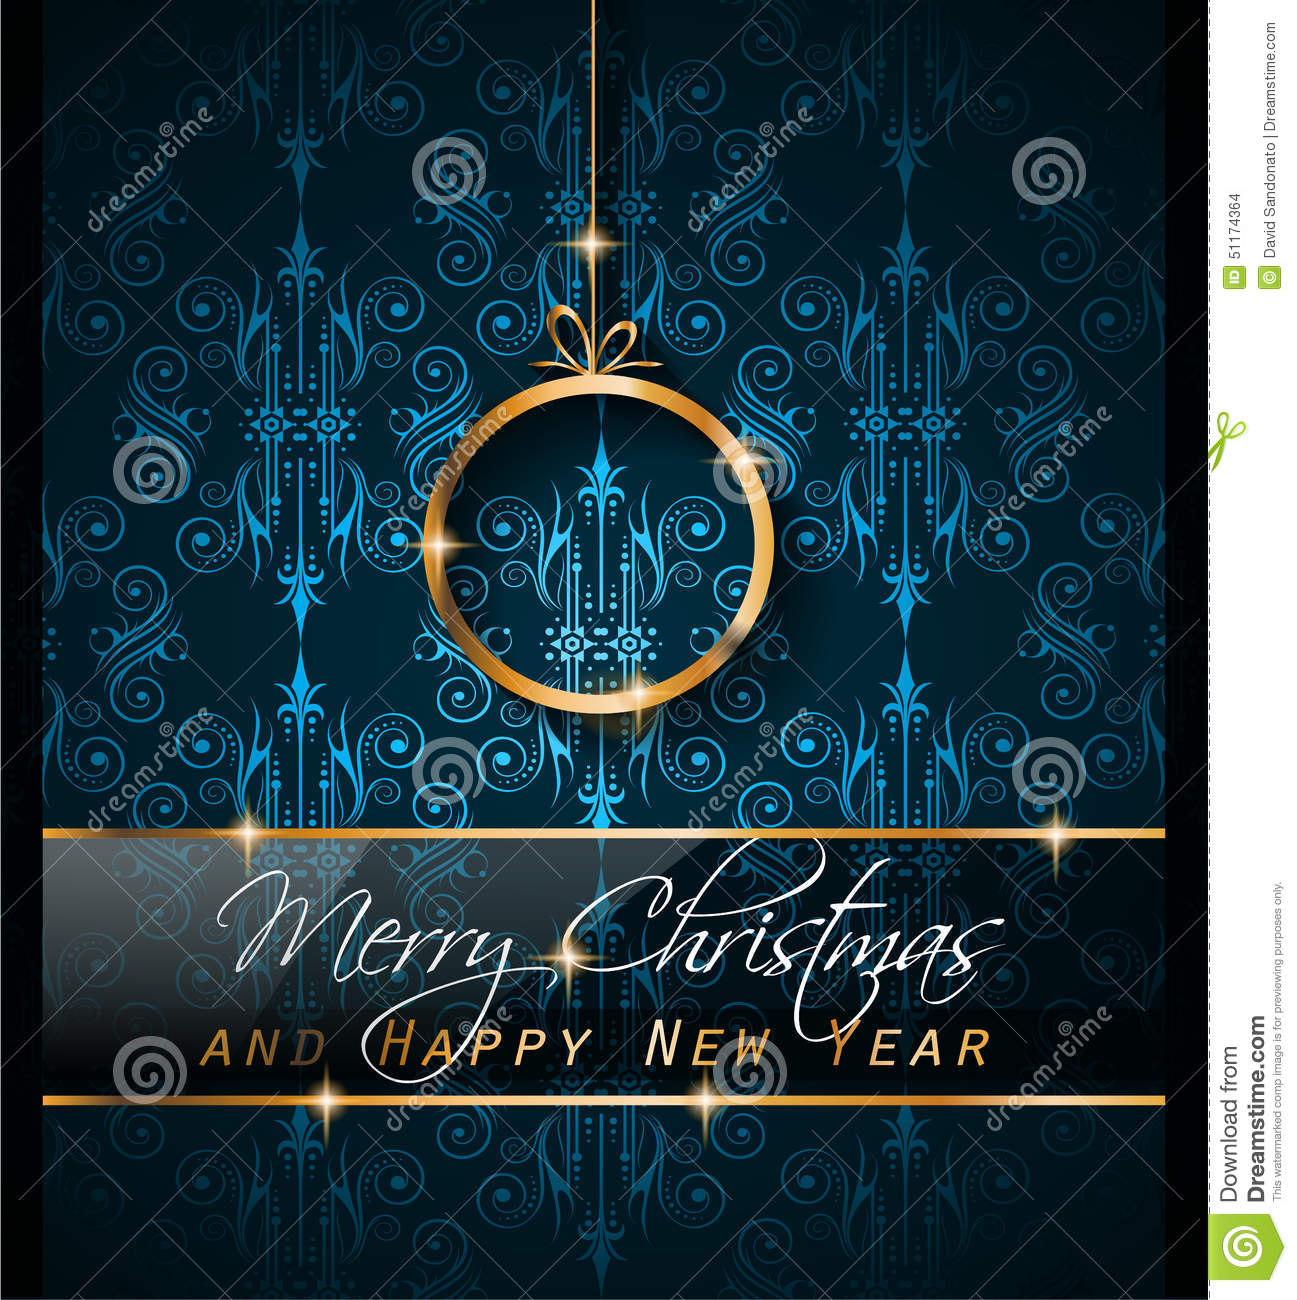 2016 new year and happy christmas background for your flyers stock 2016 new year and happy christmas background for your flyers stopboris Choice Image